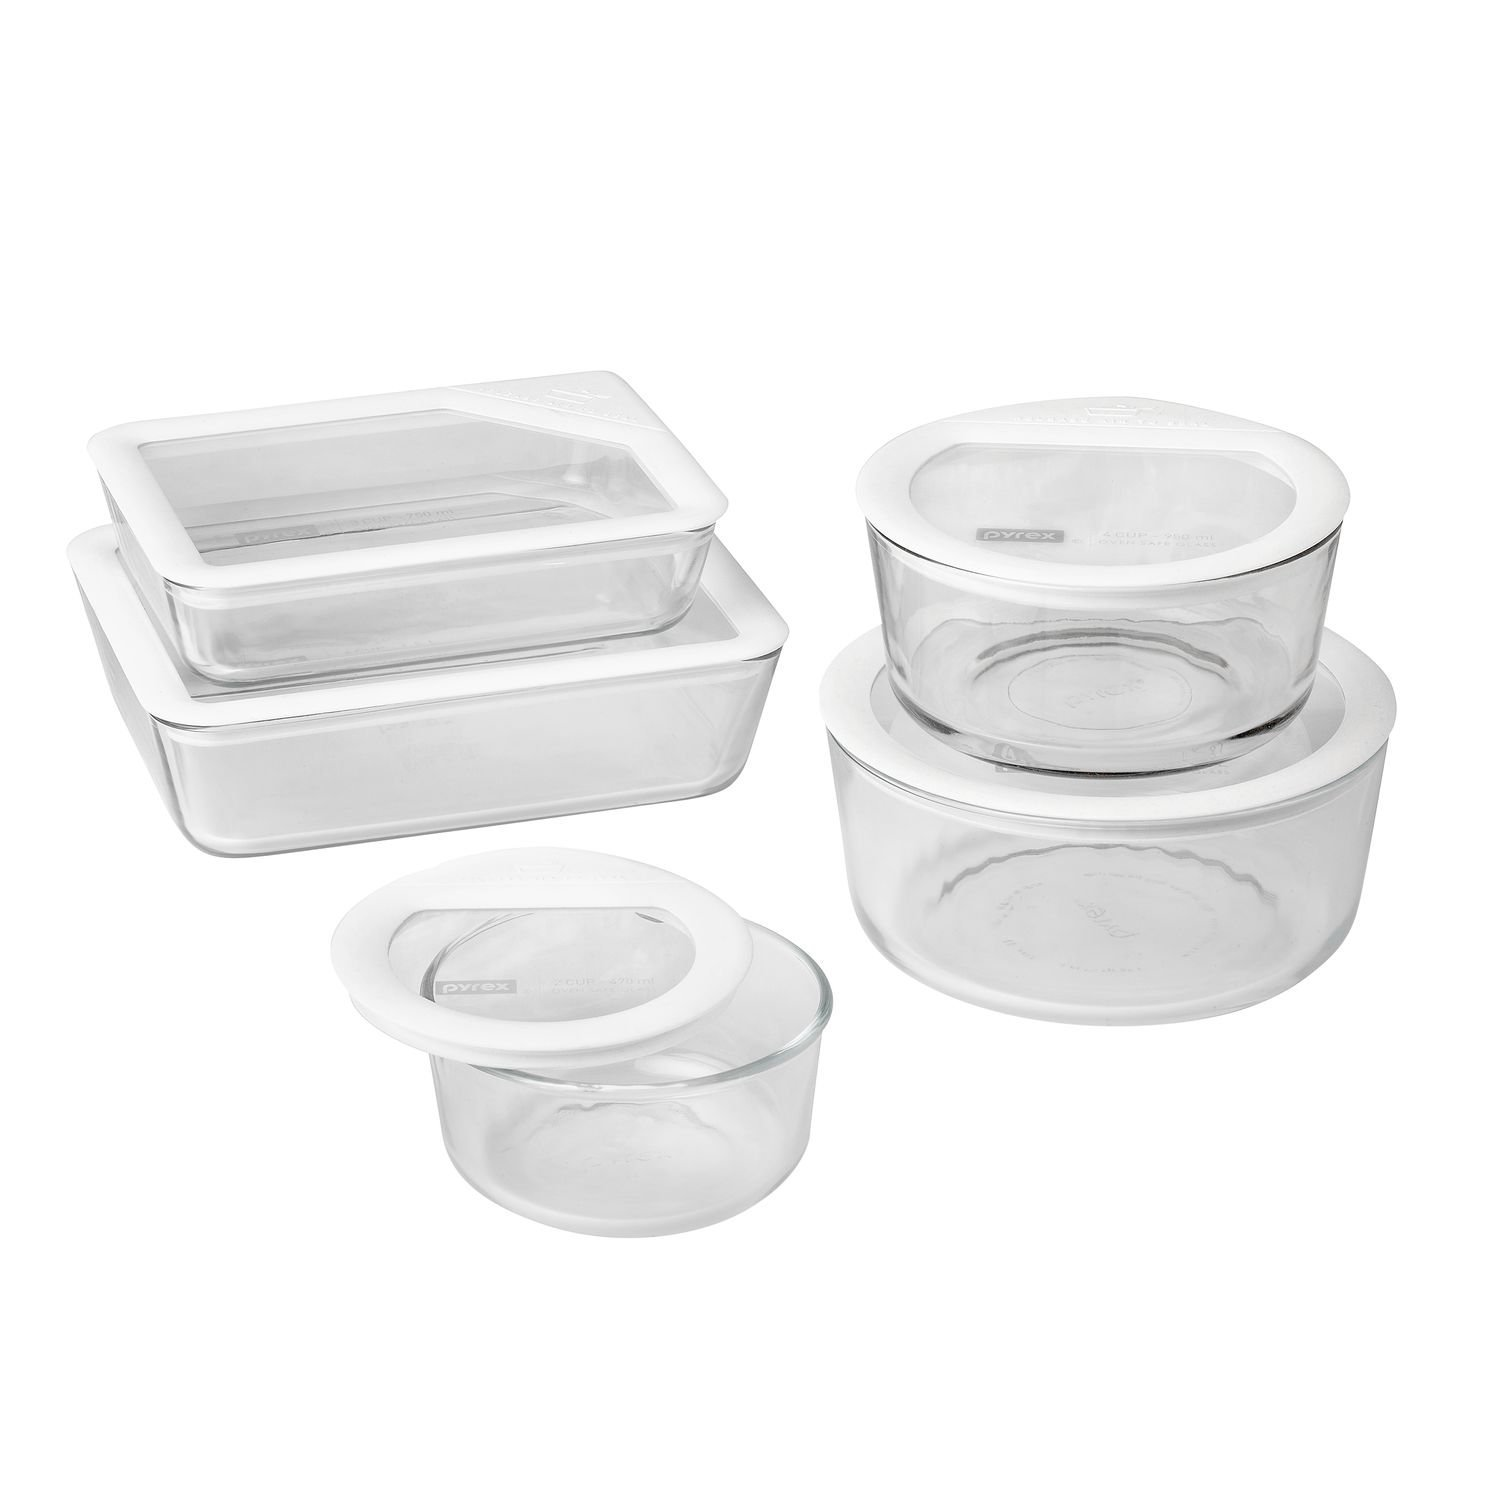 Pyrex 10 Piece Ultimate No Leak Food Storage Set, White And Clear by Pyrex